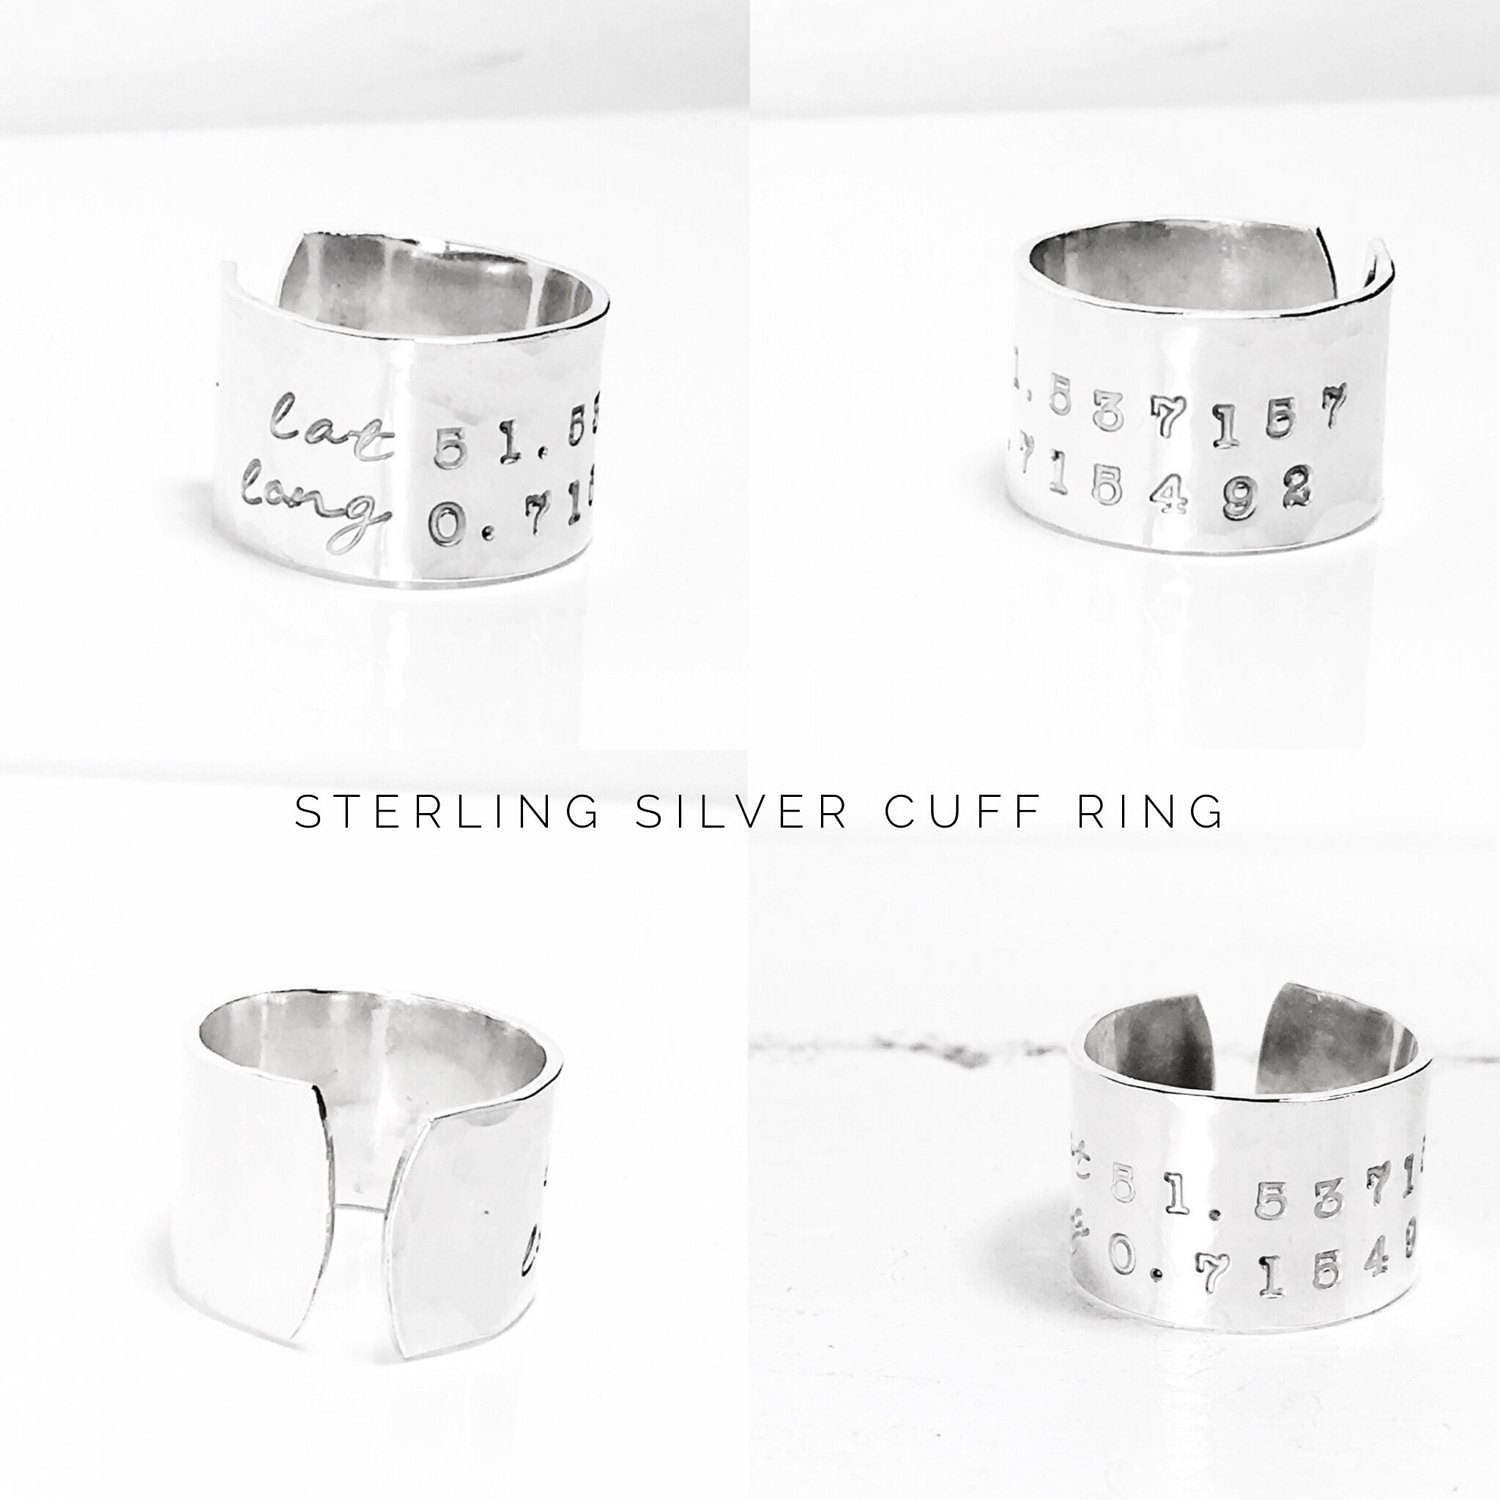 Personalised Cuff Ring  Sterling Silver Ring Ring  Personalized Jewelry  Inspirational Ring  Name Ring  Custom Ring by Glam and Co